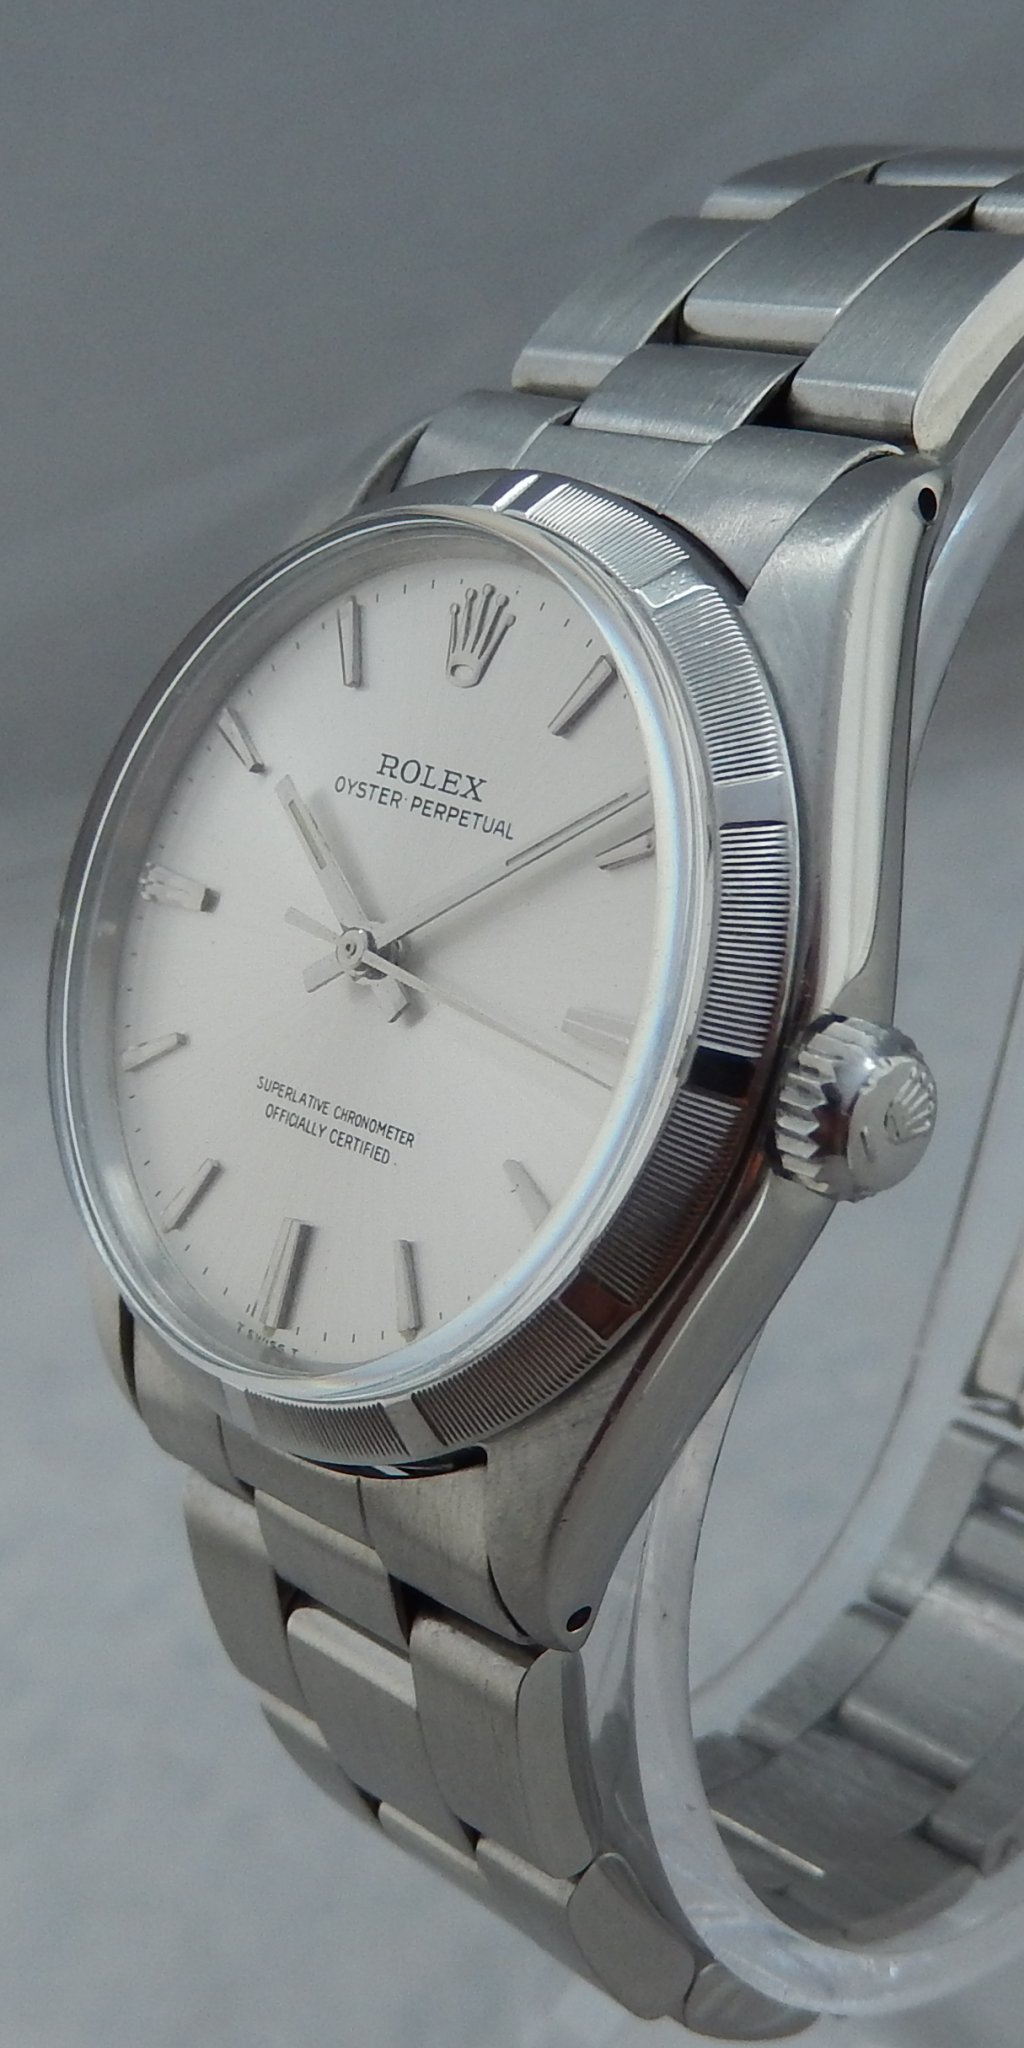 perpetual watch from gents watches vintage rolex image oyster steel